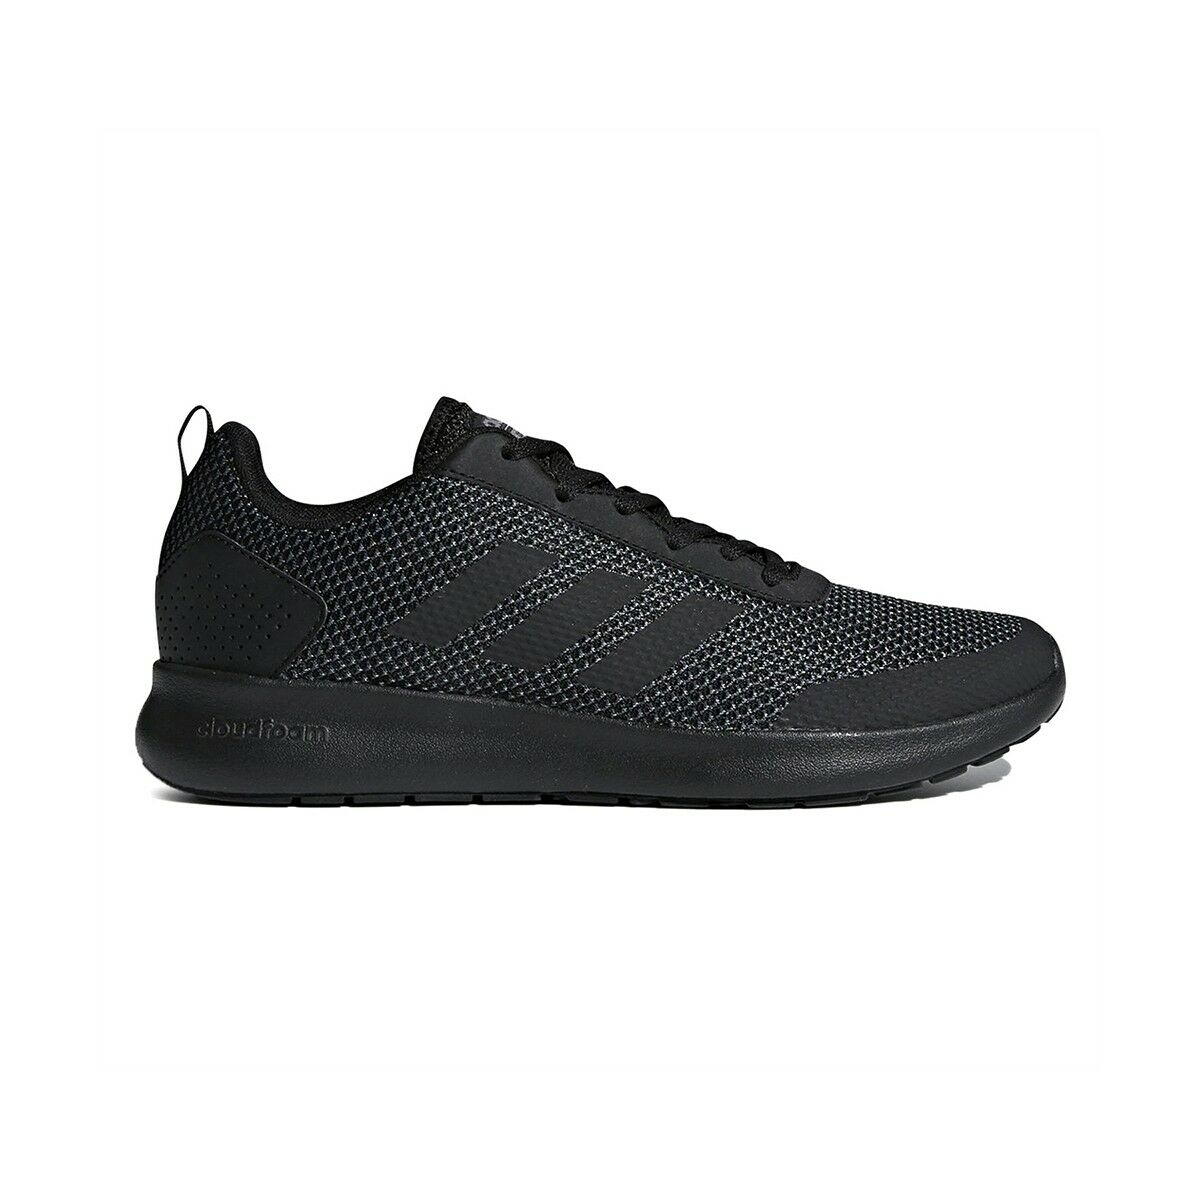 New Adidas Element Race DB1455 Black Running Shoes Men Trainers נעלי ספורט אדידס